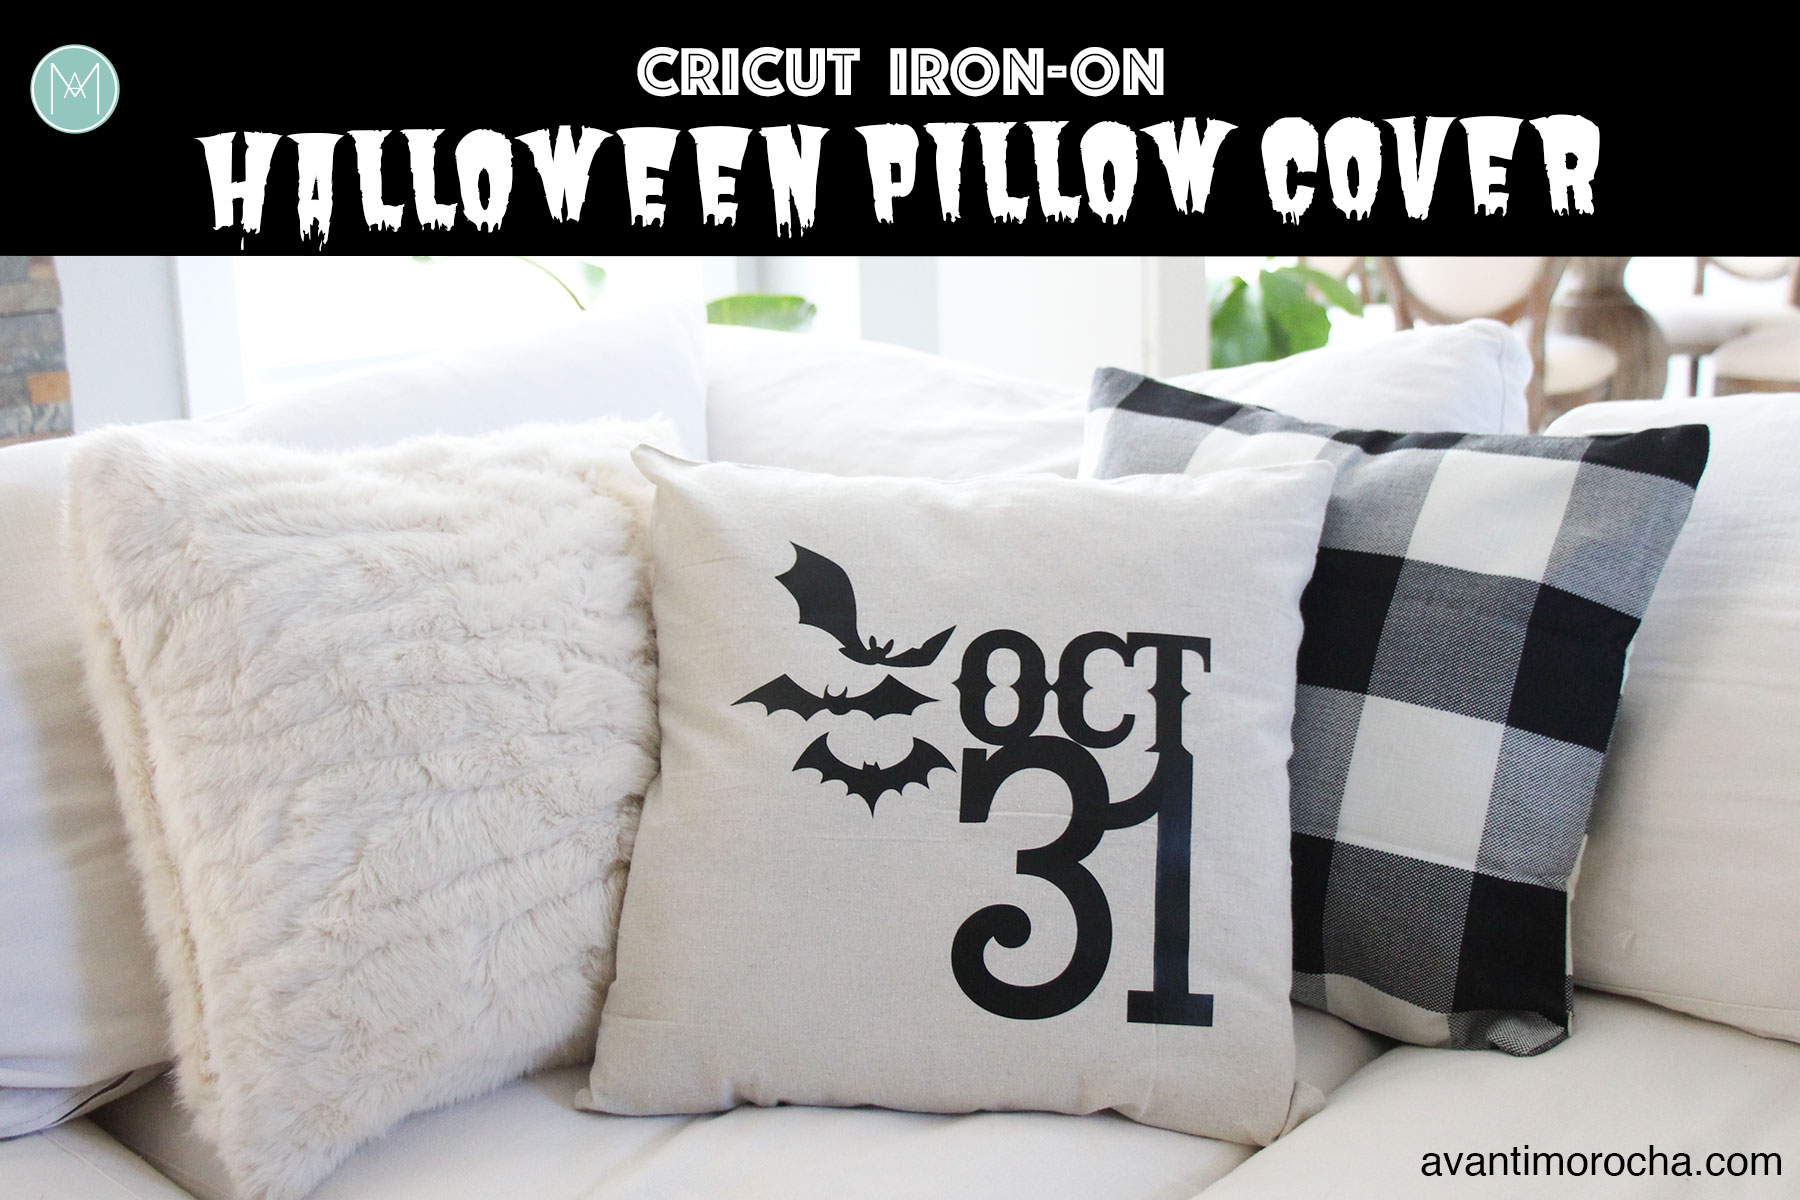 Cricut Iron-On | Halloween Pillow Cover